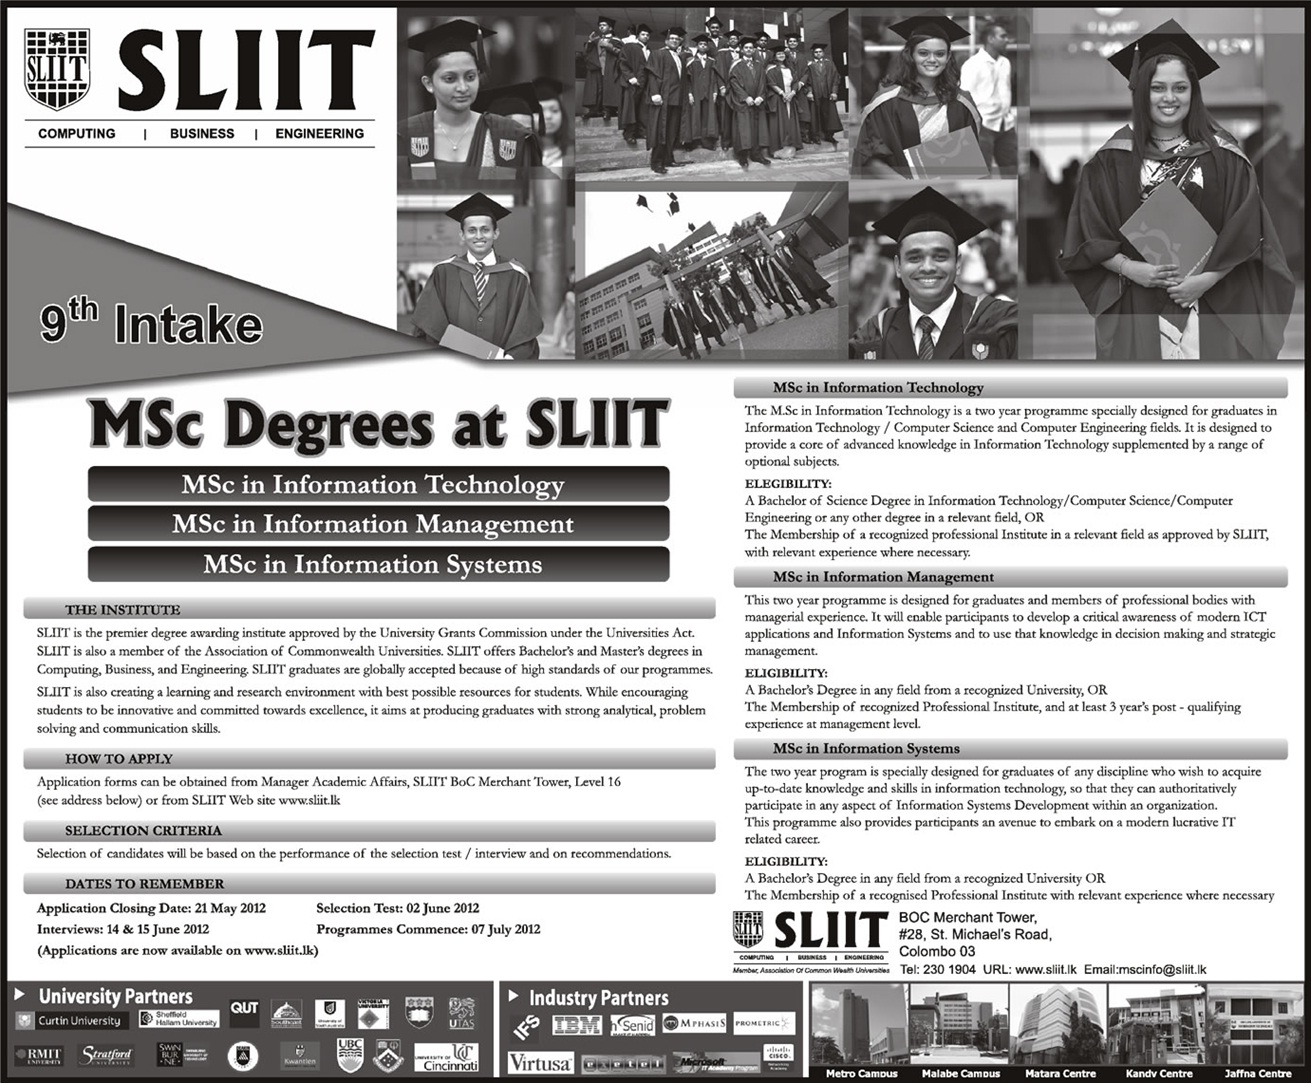 M.Sc Degrees at SLIIT, Srilanka